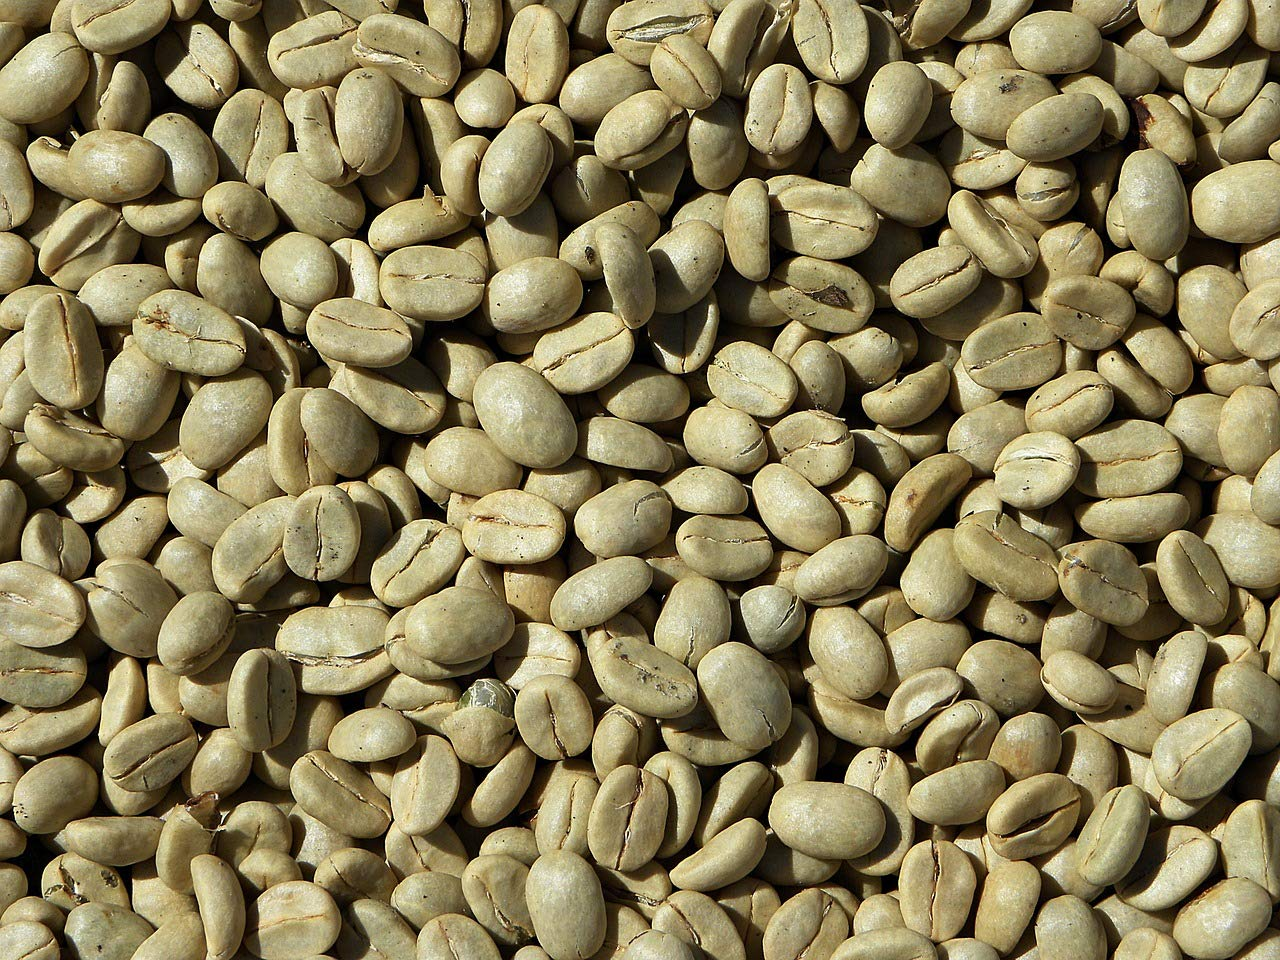 5 lbs Guatemala Green Coffee Beans - MICRO LOT, Green (unroasted) Coffee Beans, fair trade, eco friendly by Pepe Cafe